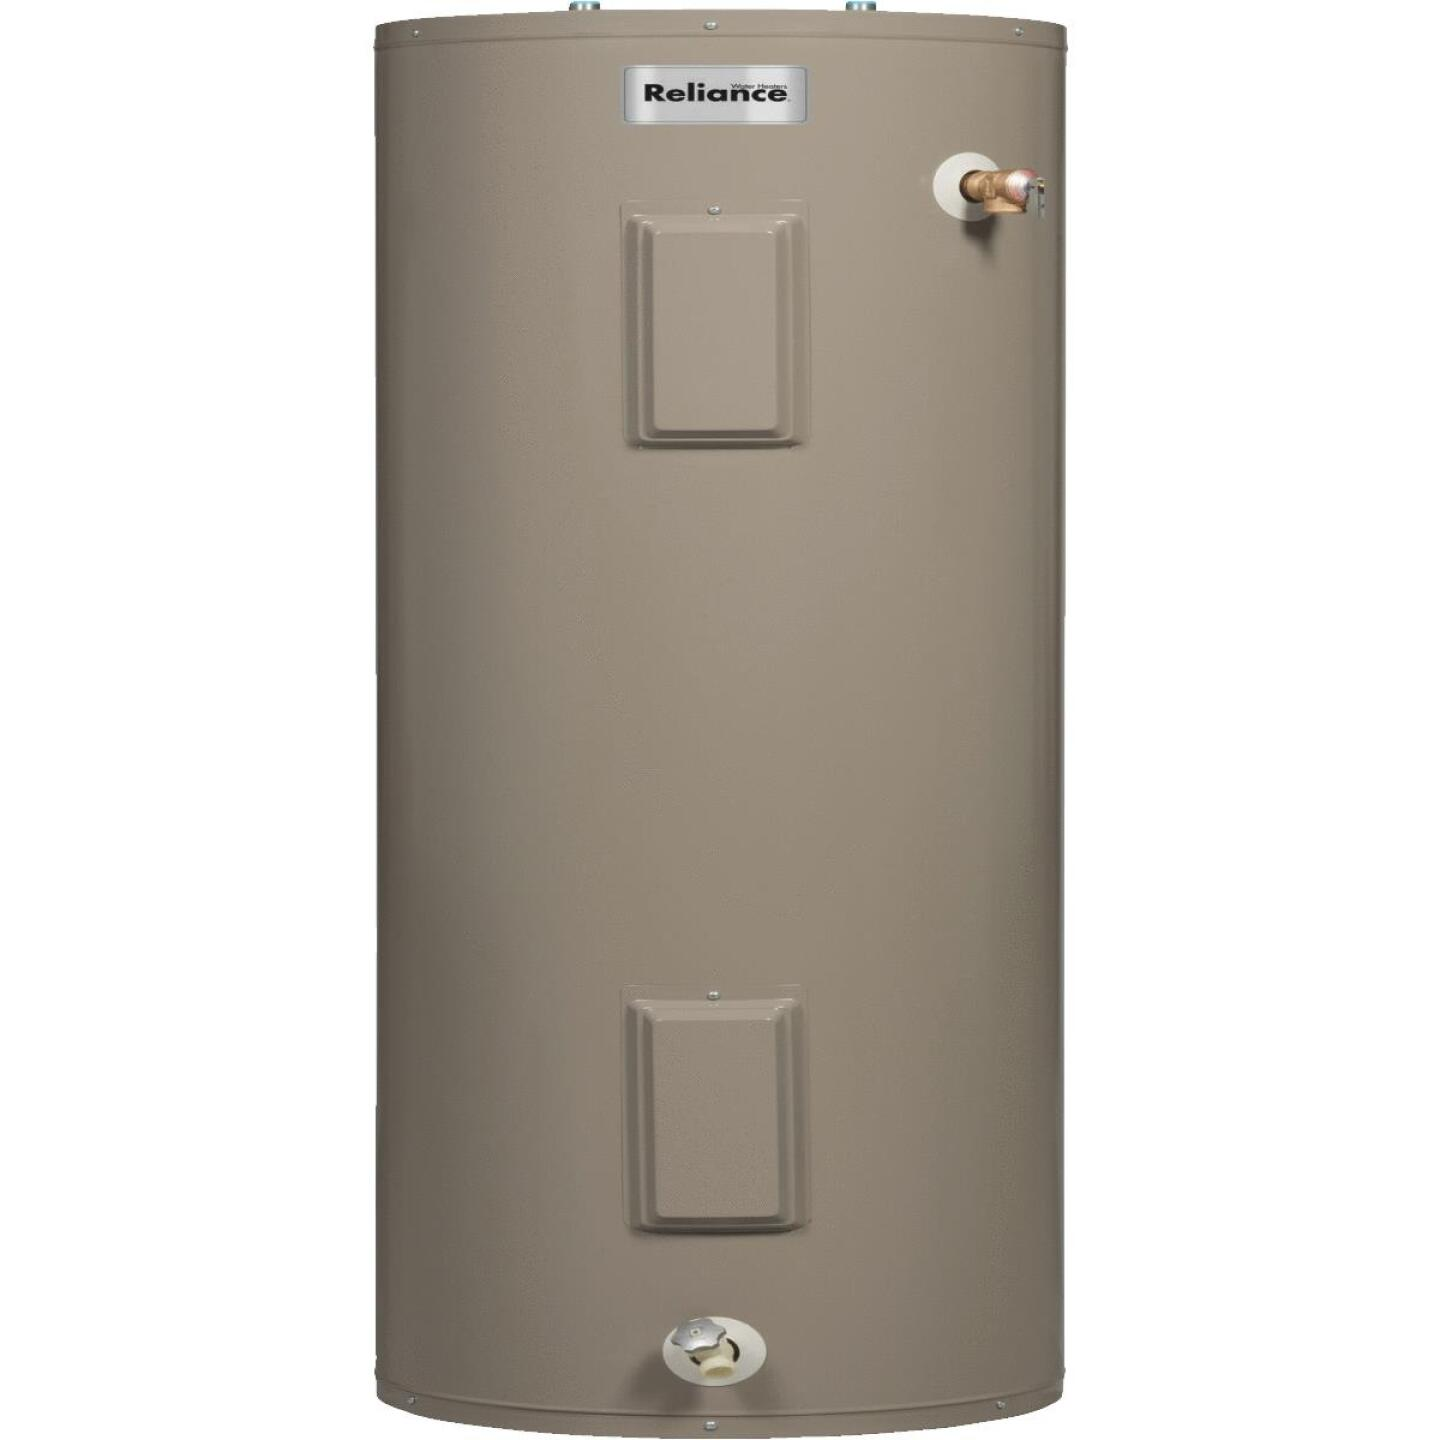 Reliance 30 Gal. Medium 6yr 4500/4500W Elements Electric Water Heater Image 1